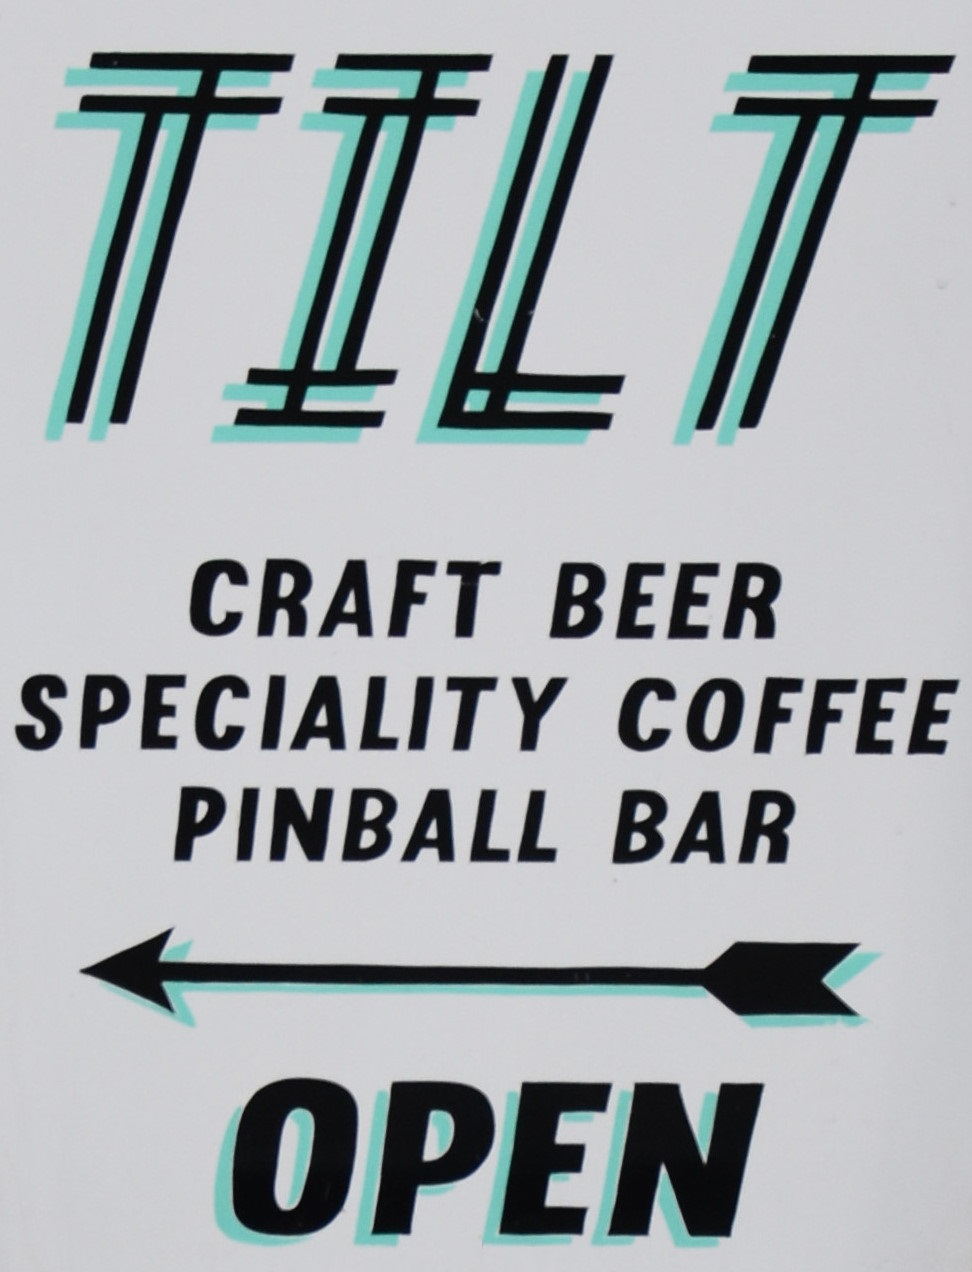 Details of the new (to me, at least) A-board from outside Tilt in Birmingham, promising craft beer, speciality coffee and pinball.